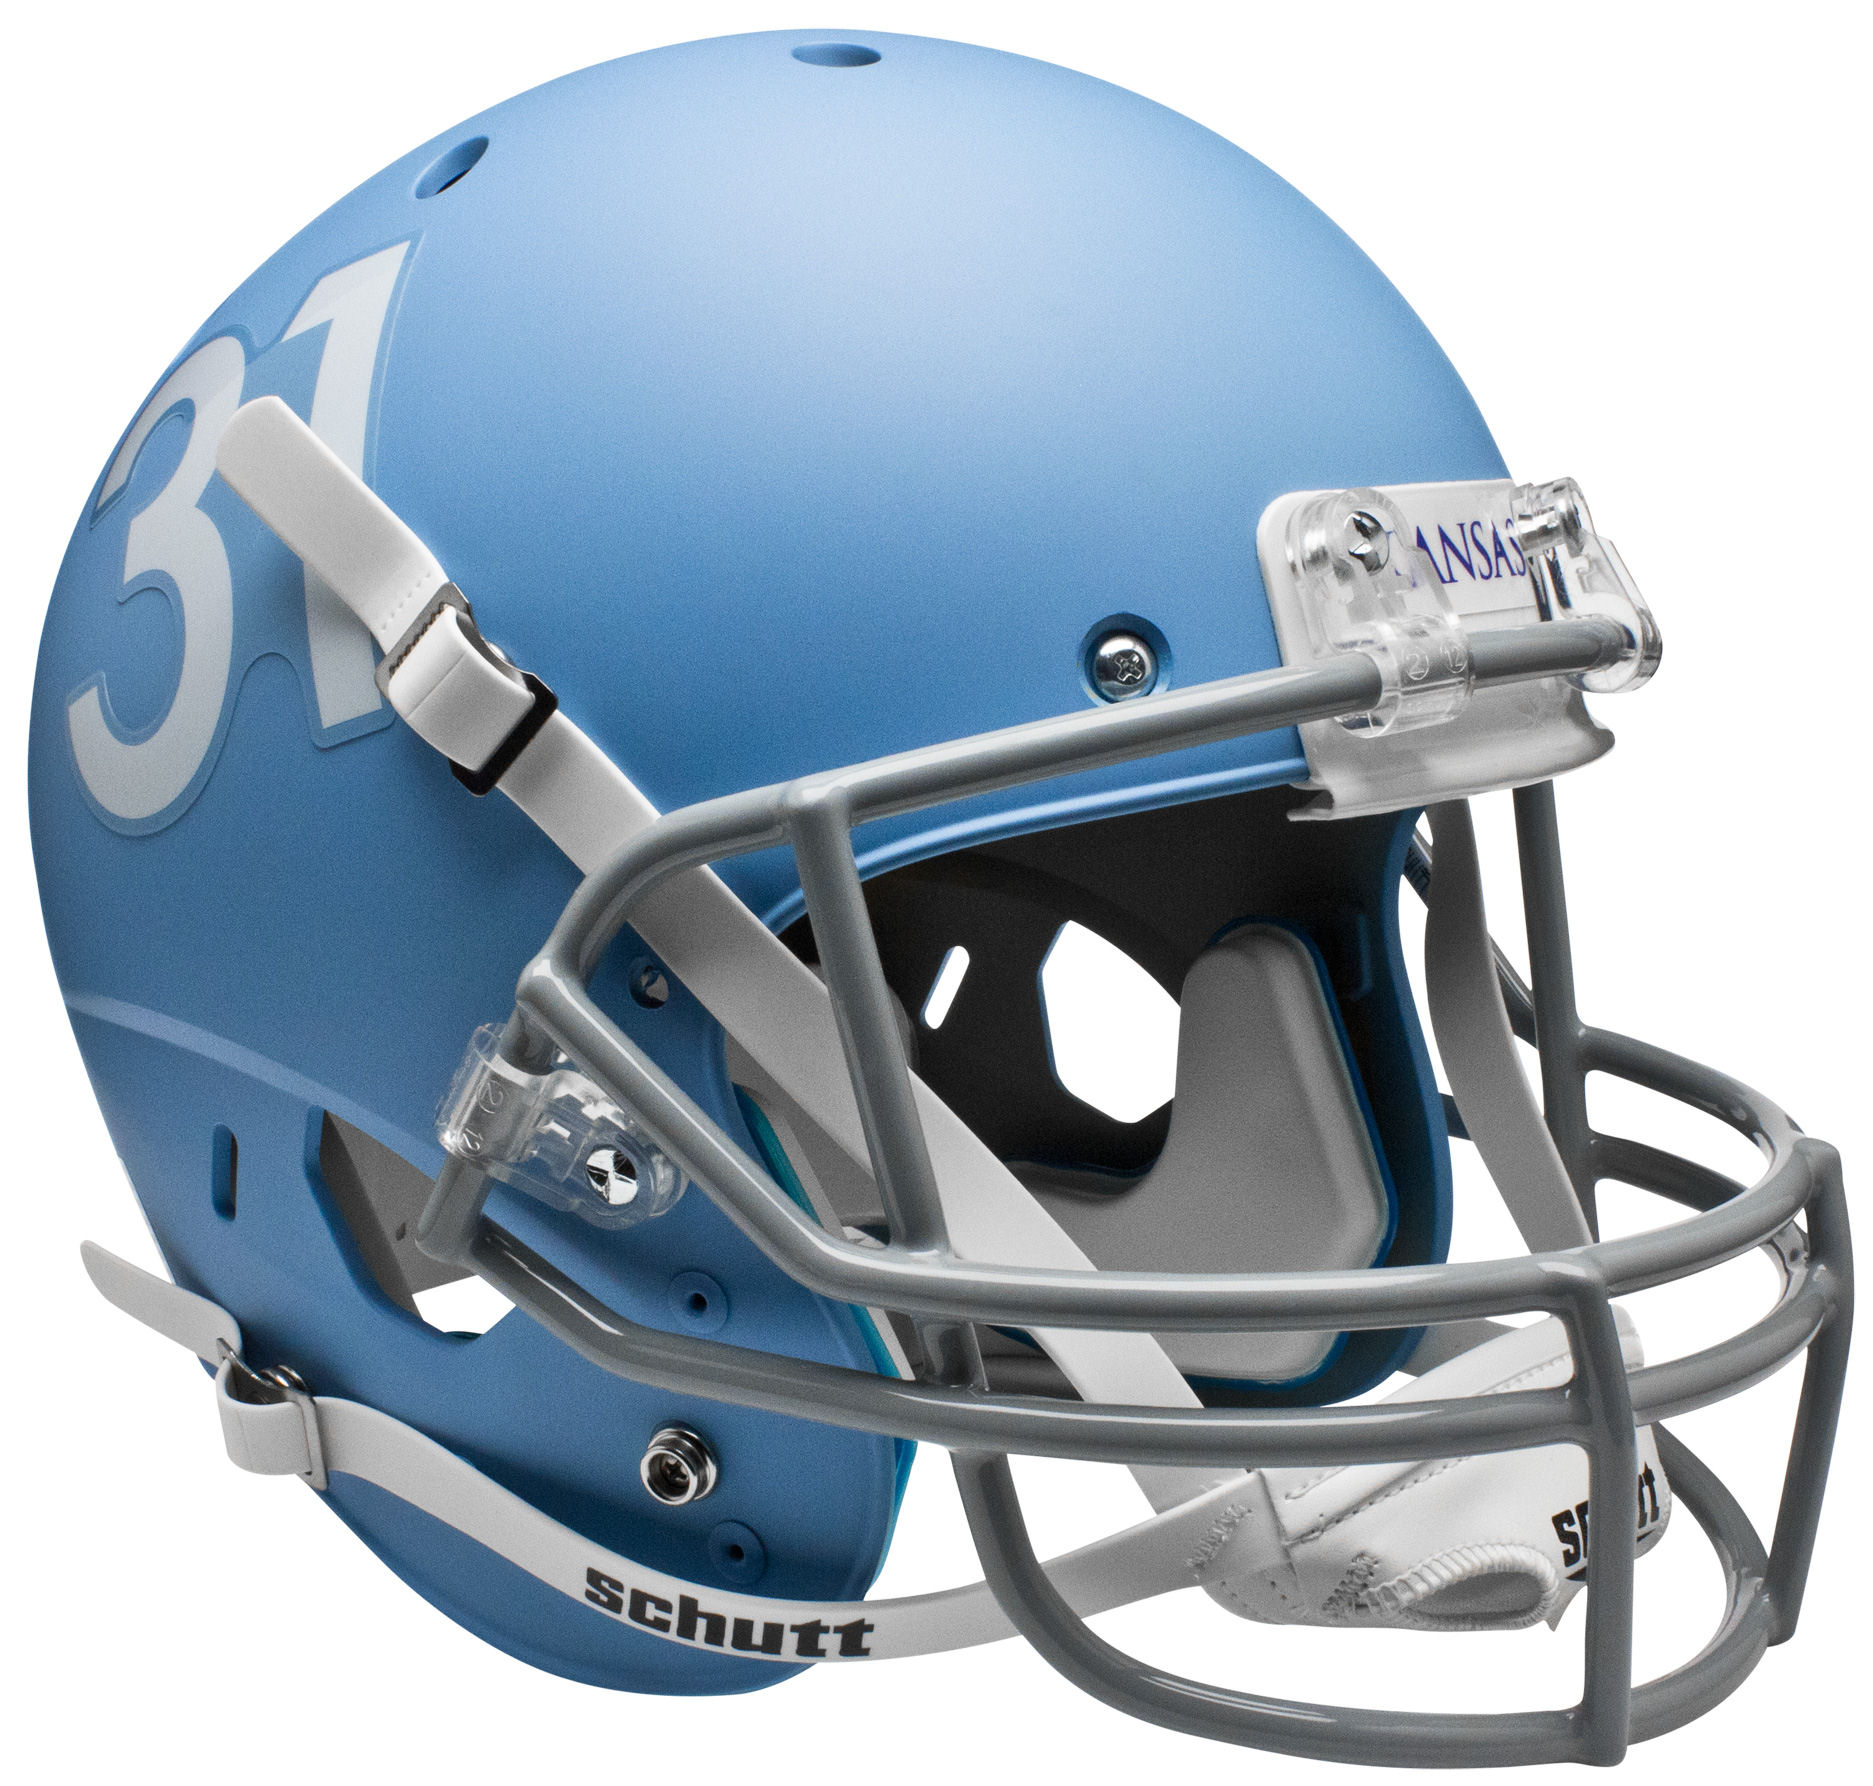 Kansas Jayhawks Full XP Replica Football Helmet Schutt <B>Matte Columbia Blue</B>